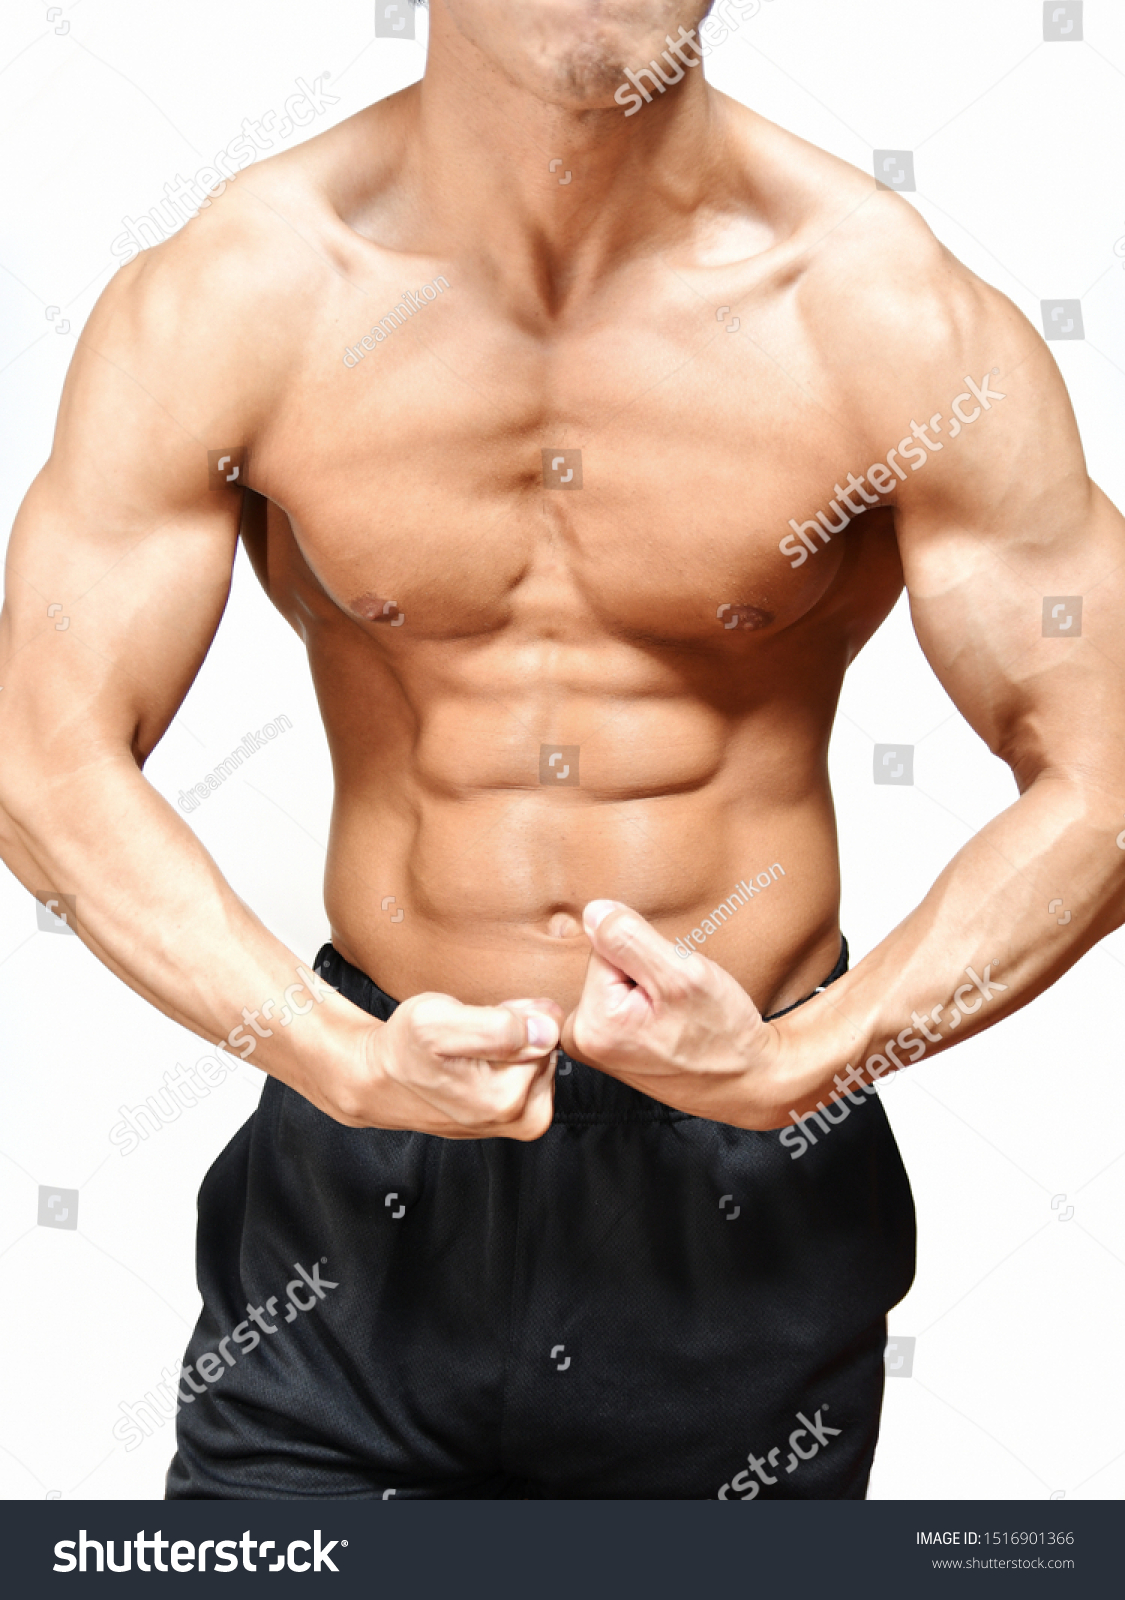 Youth Body Trained Body Building Stock Photo Edit Now 1516901366